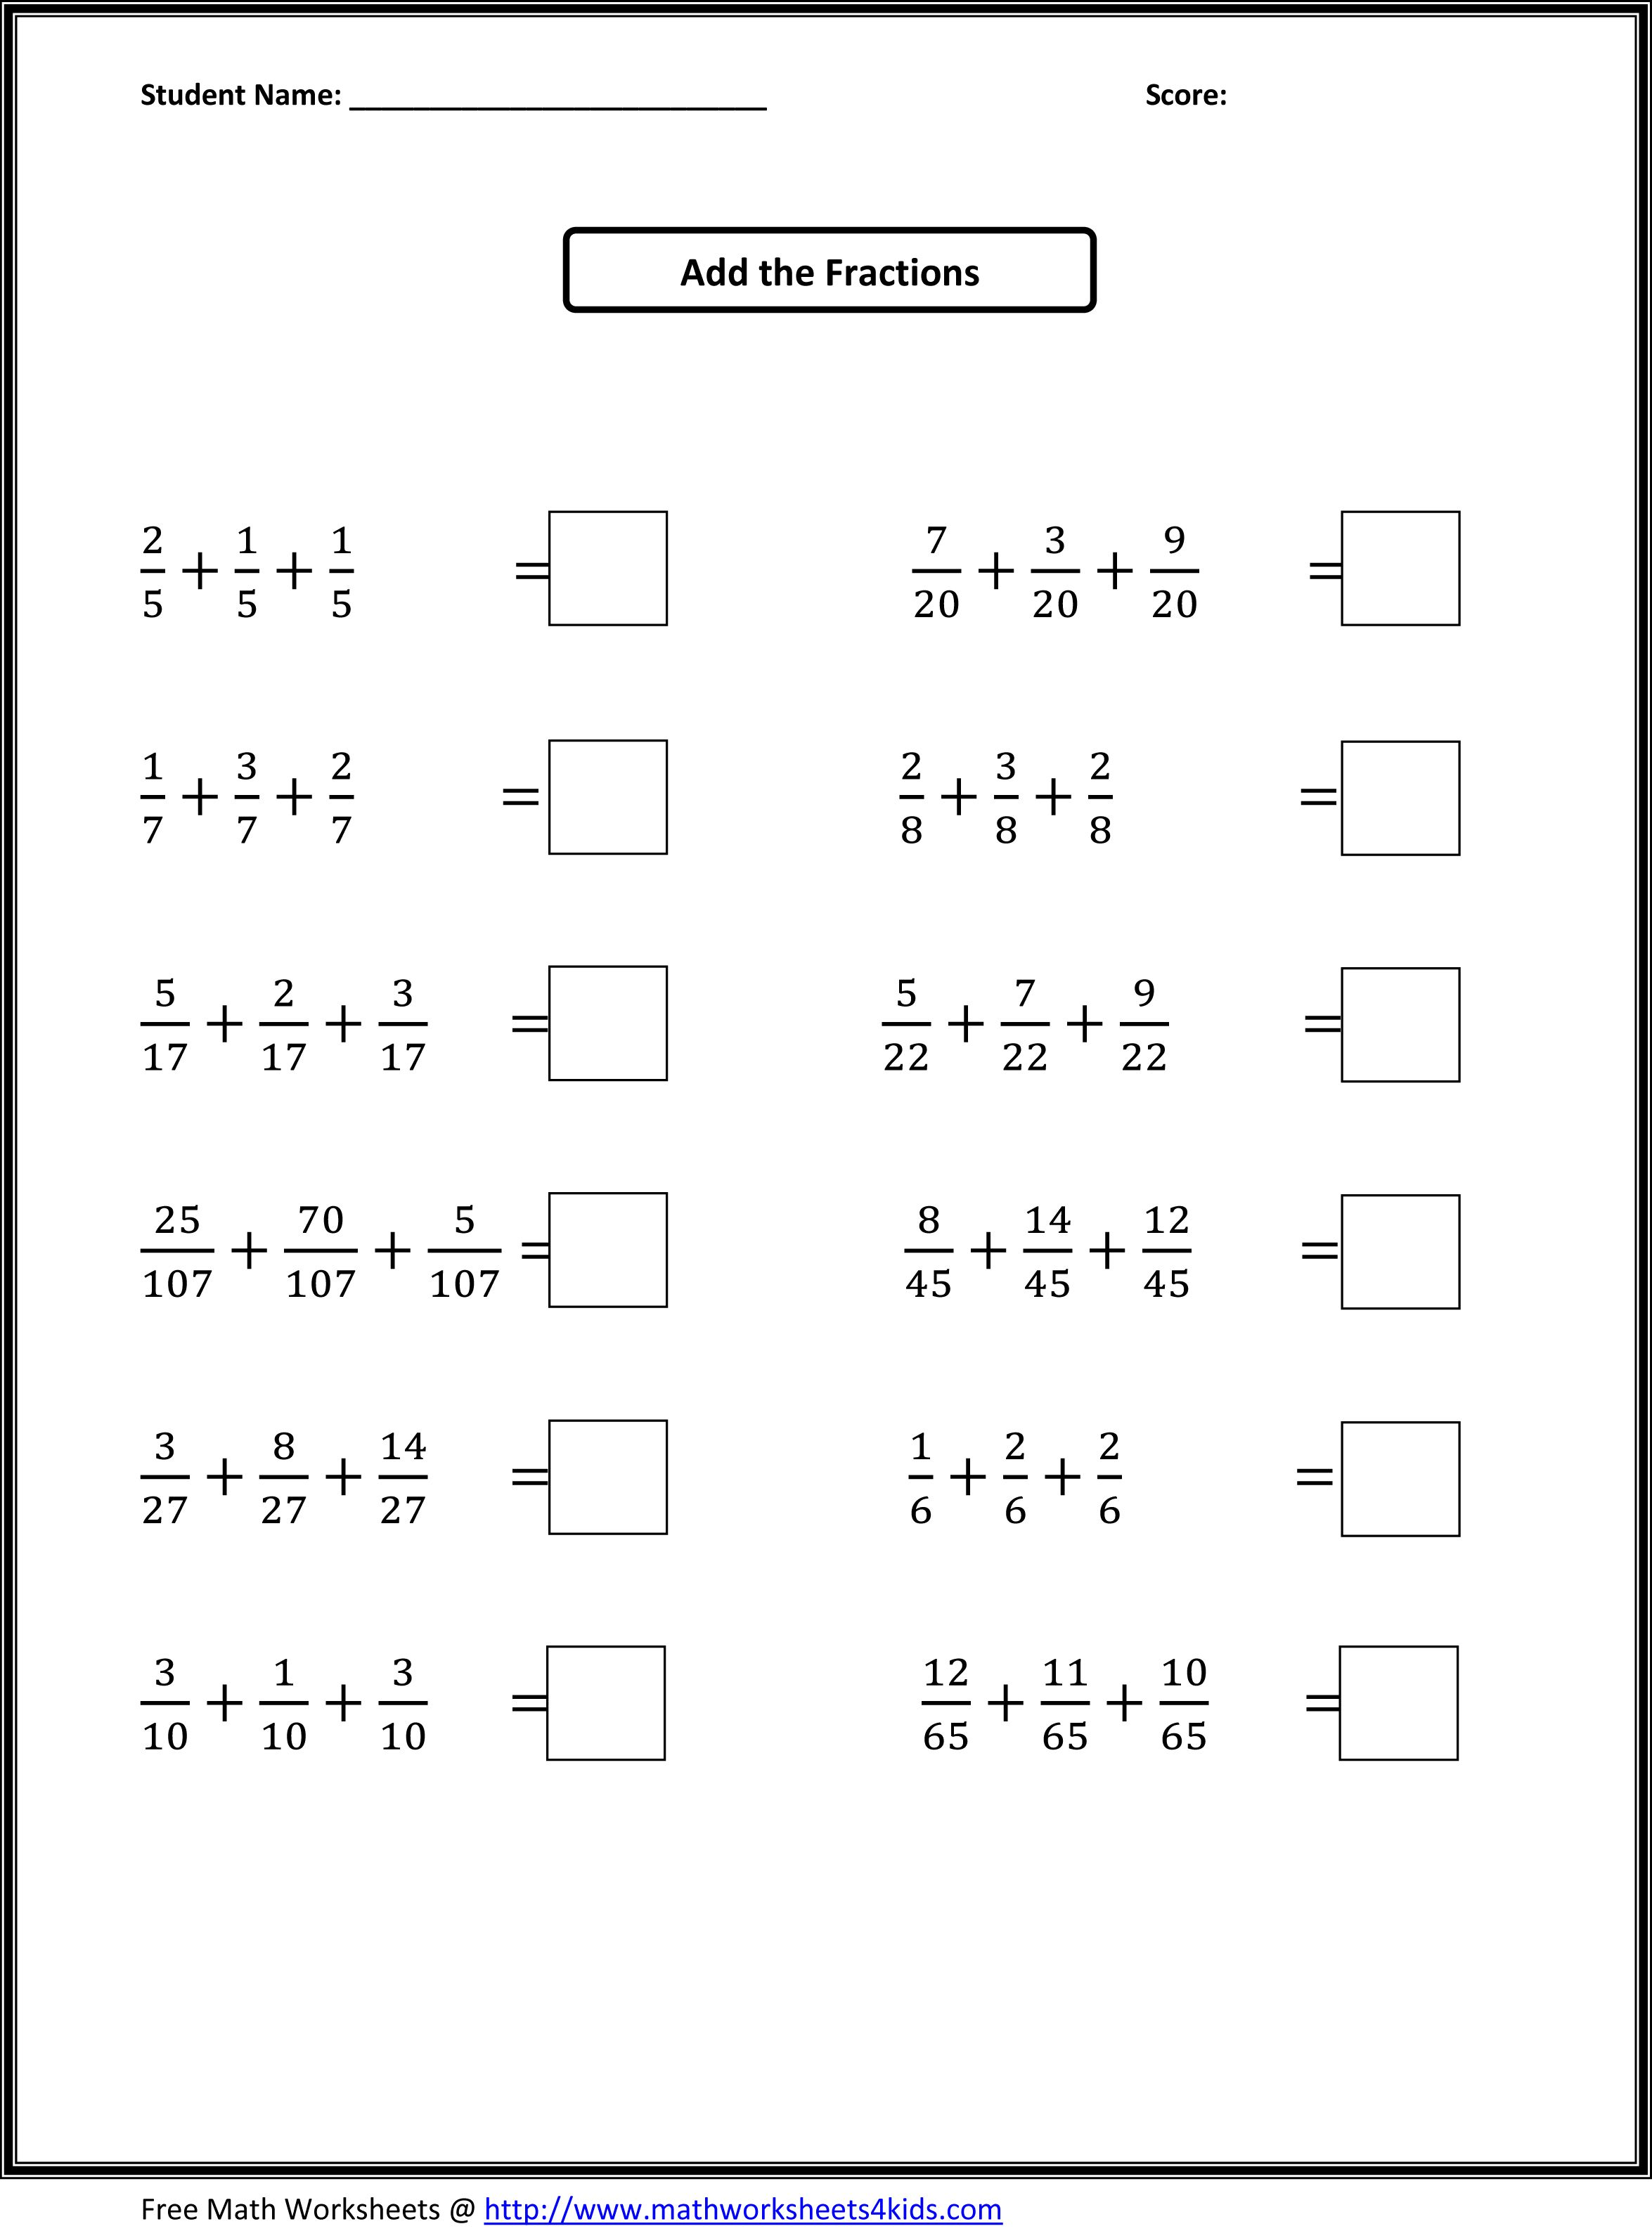 Worksheets for all early ed grades All topics of math – Subtracting Fractions Worksheets with Answer Key